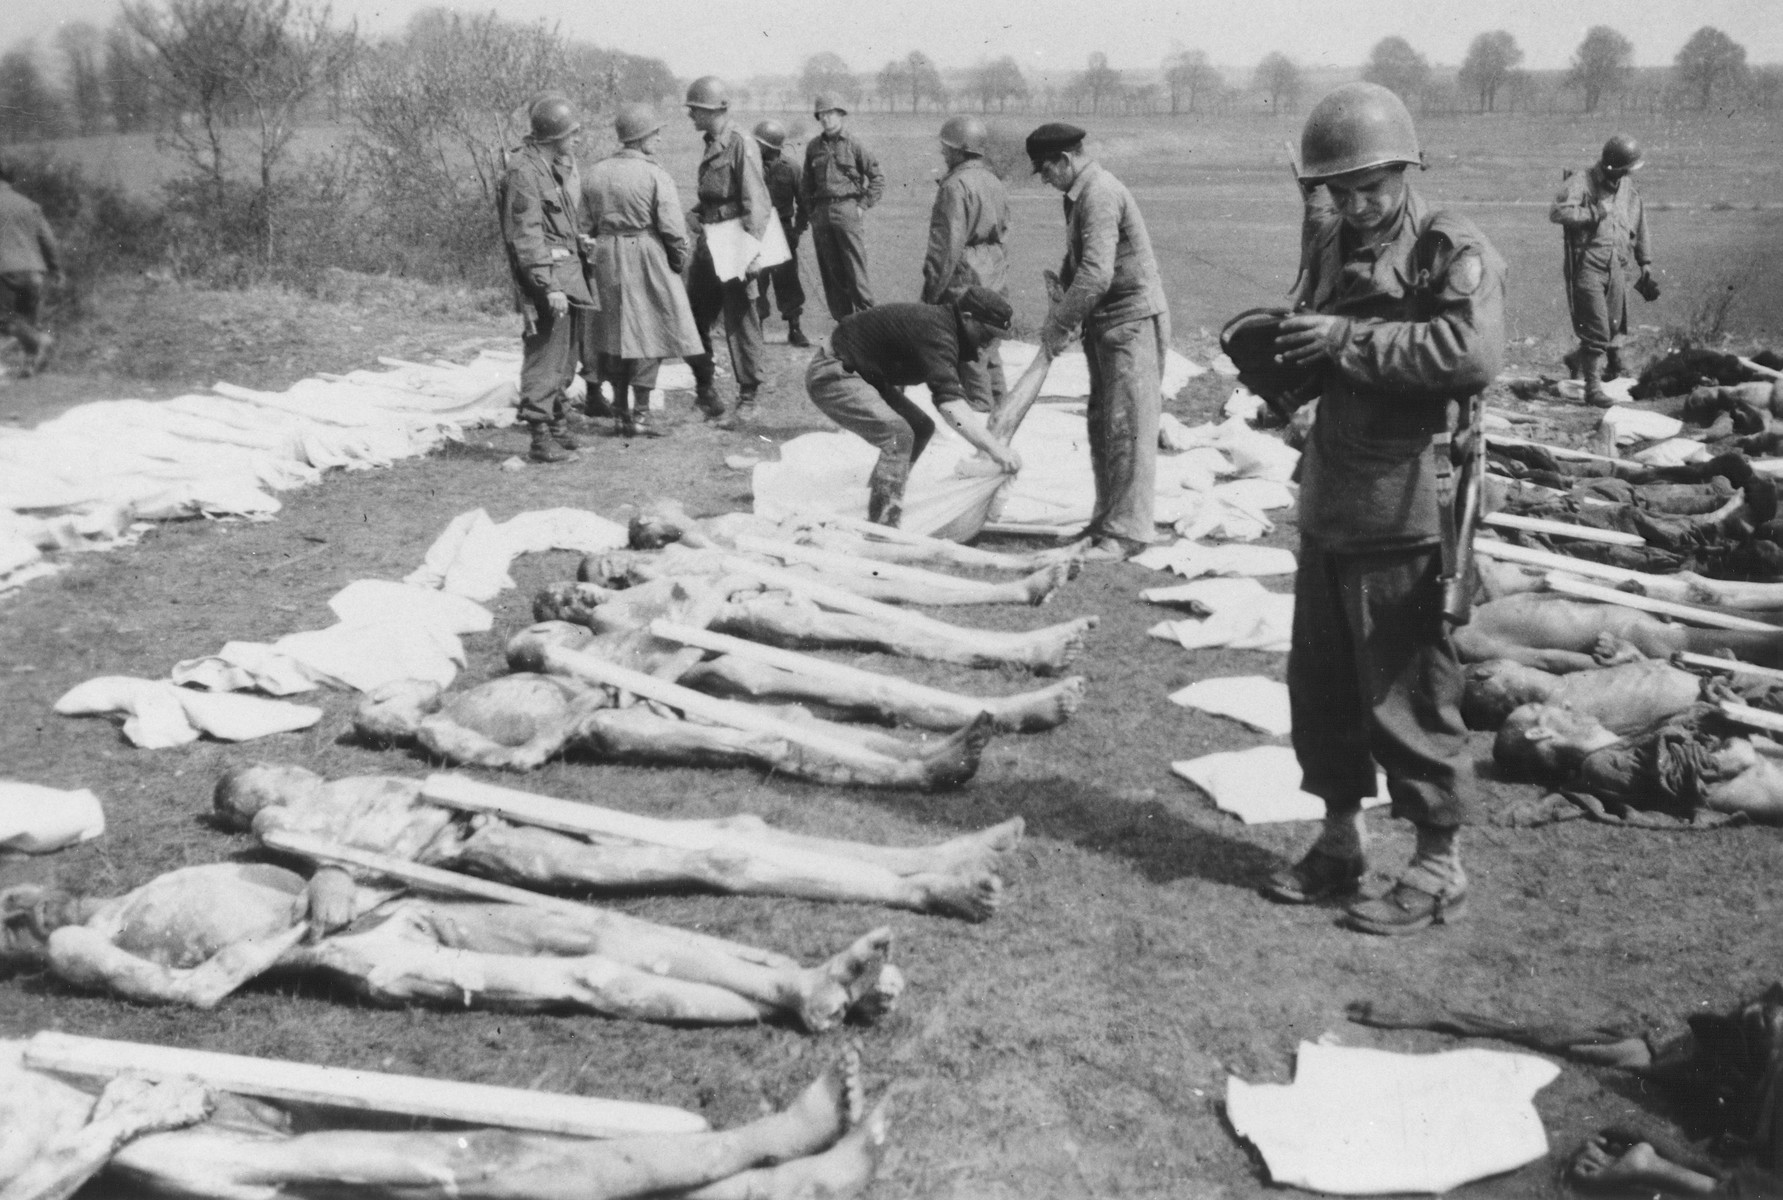 American soldiers supervise German civilians who they have forced to prepare victim corpses for burial in the Ohrdruf concentration camp.